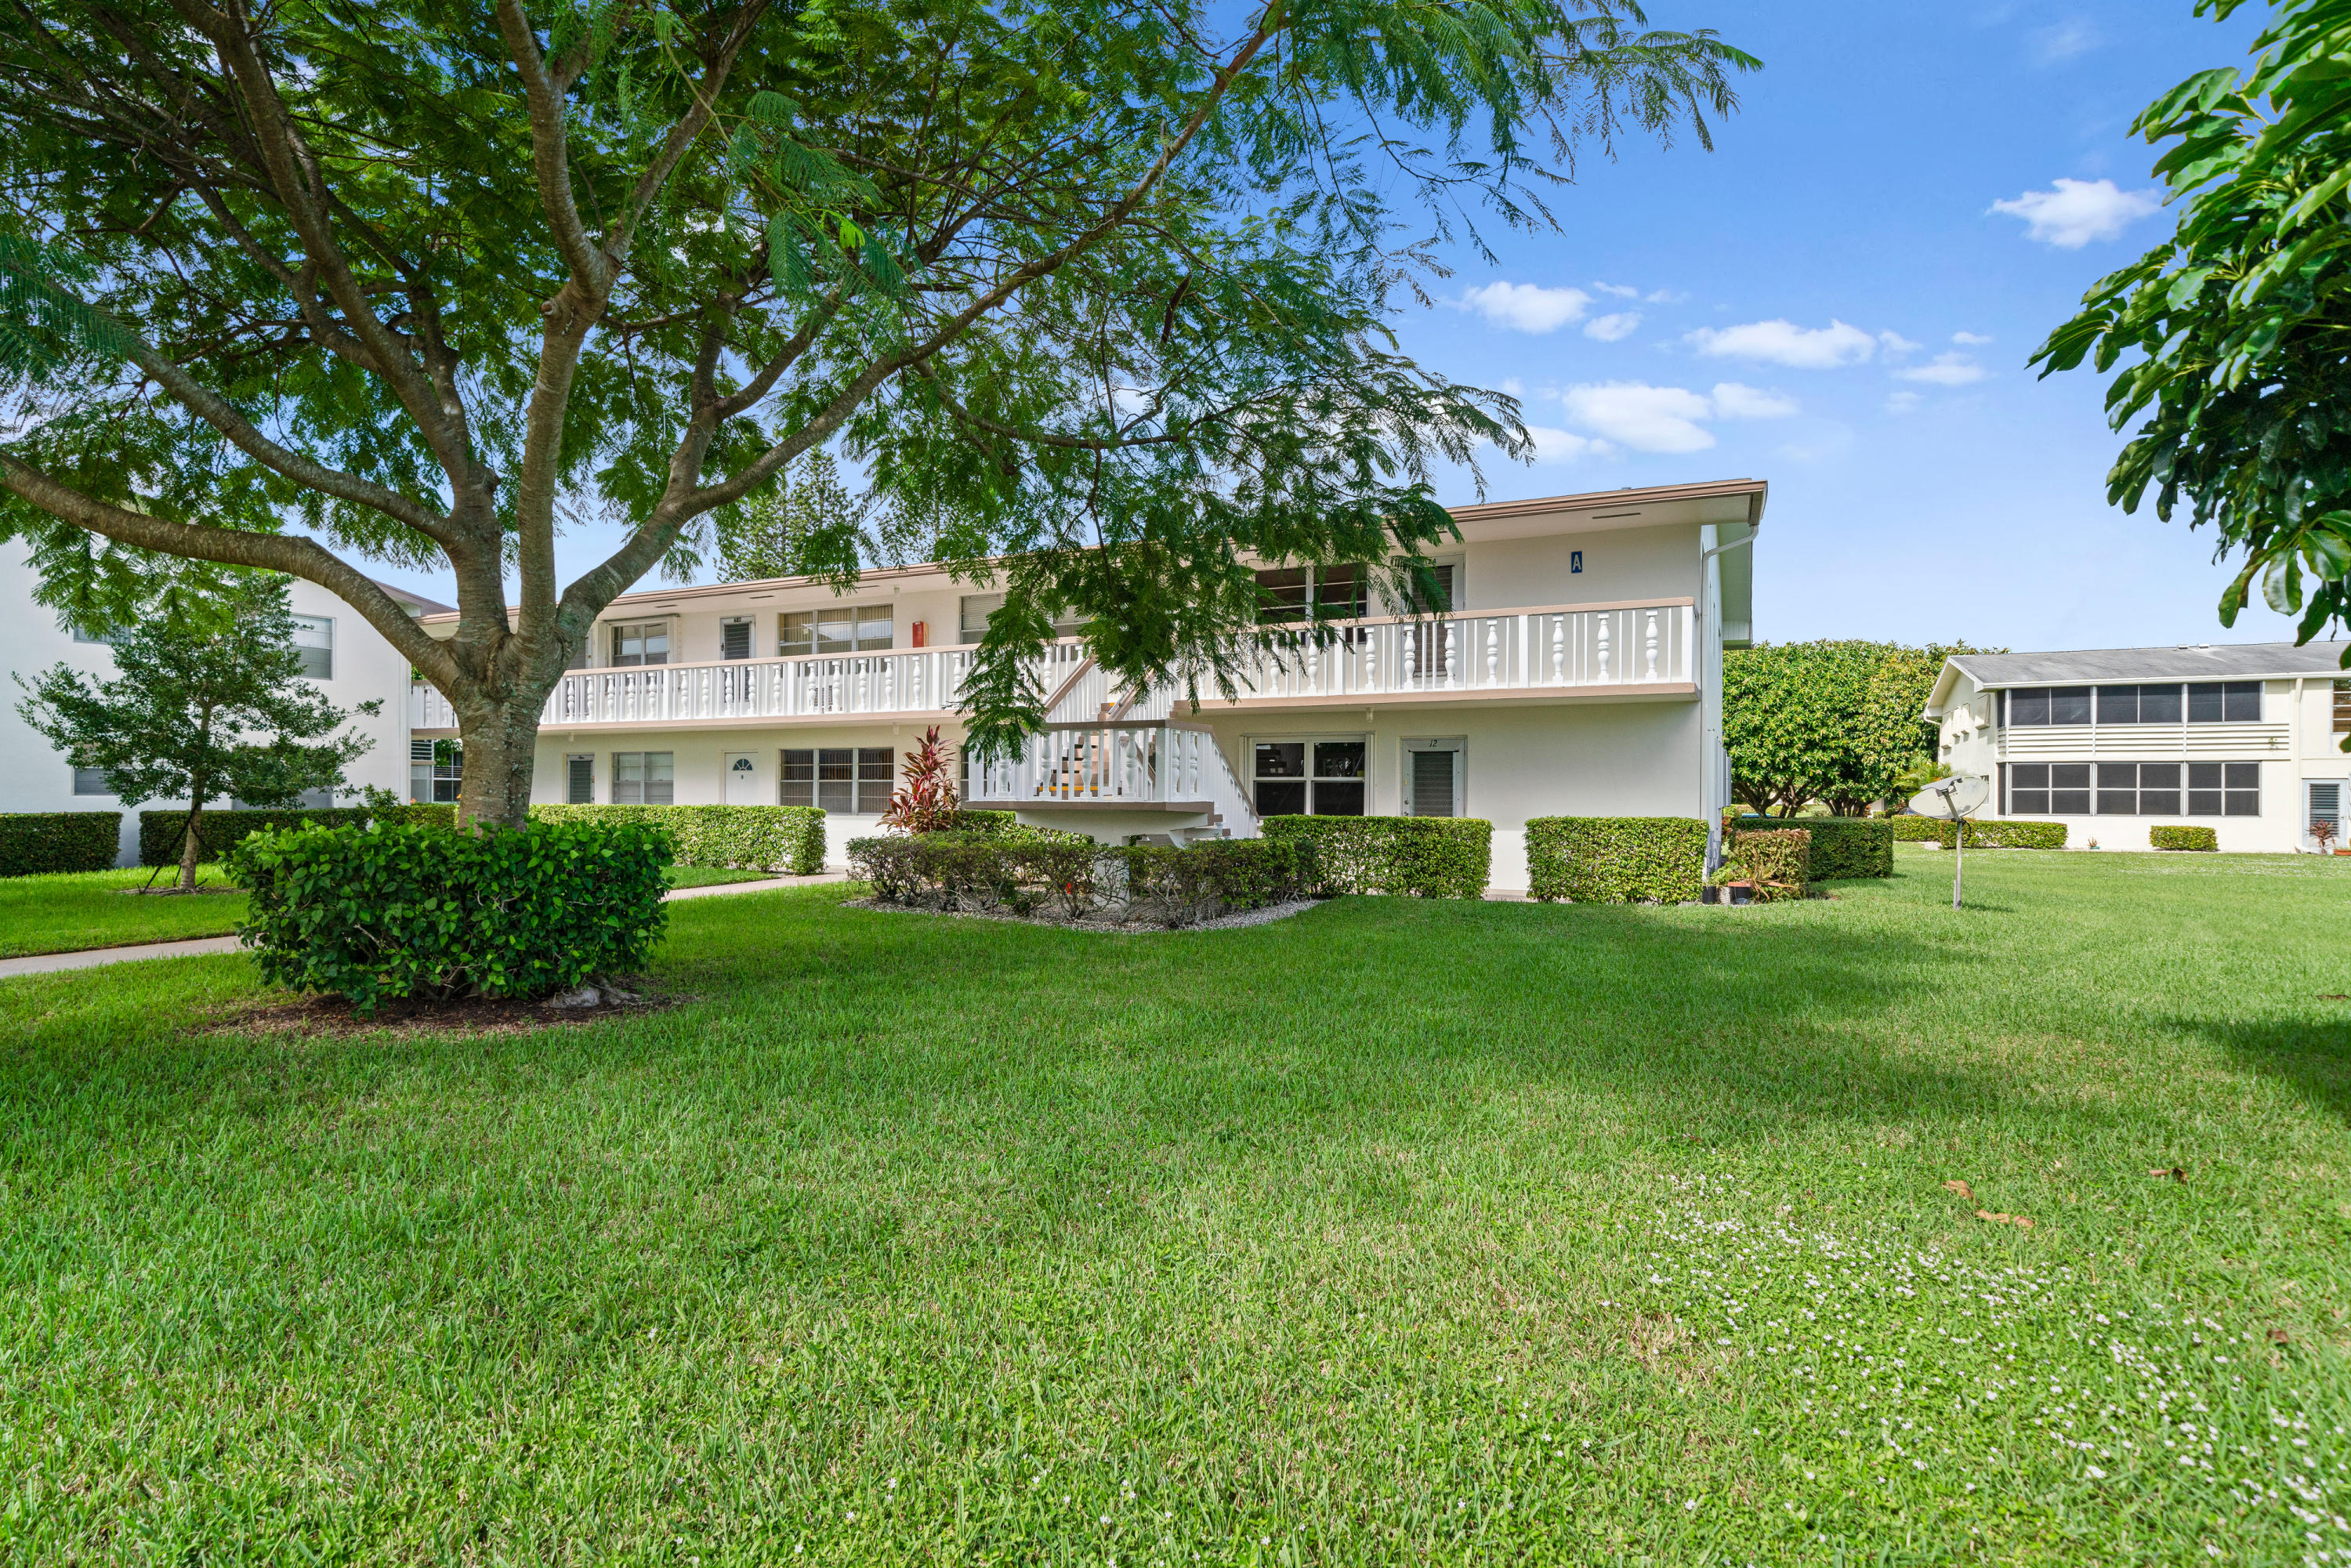 11 Cambridge A West Palm Beach, FL 33417